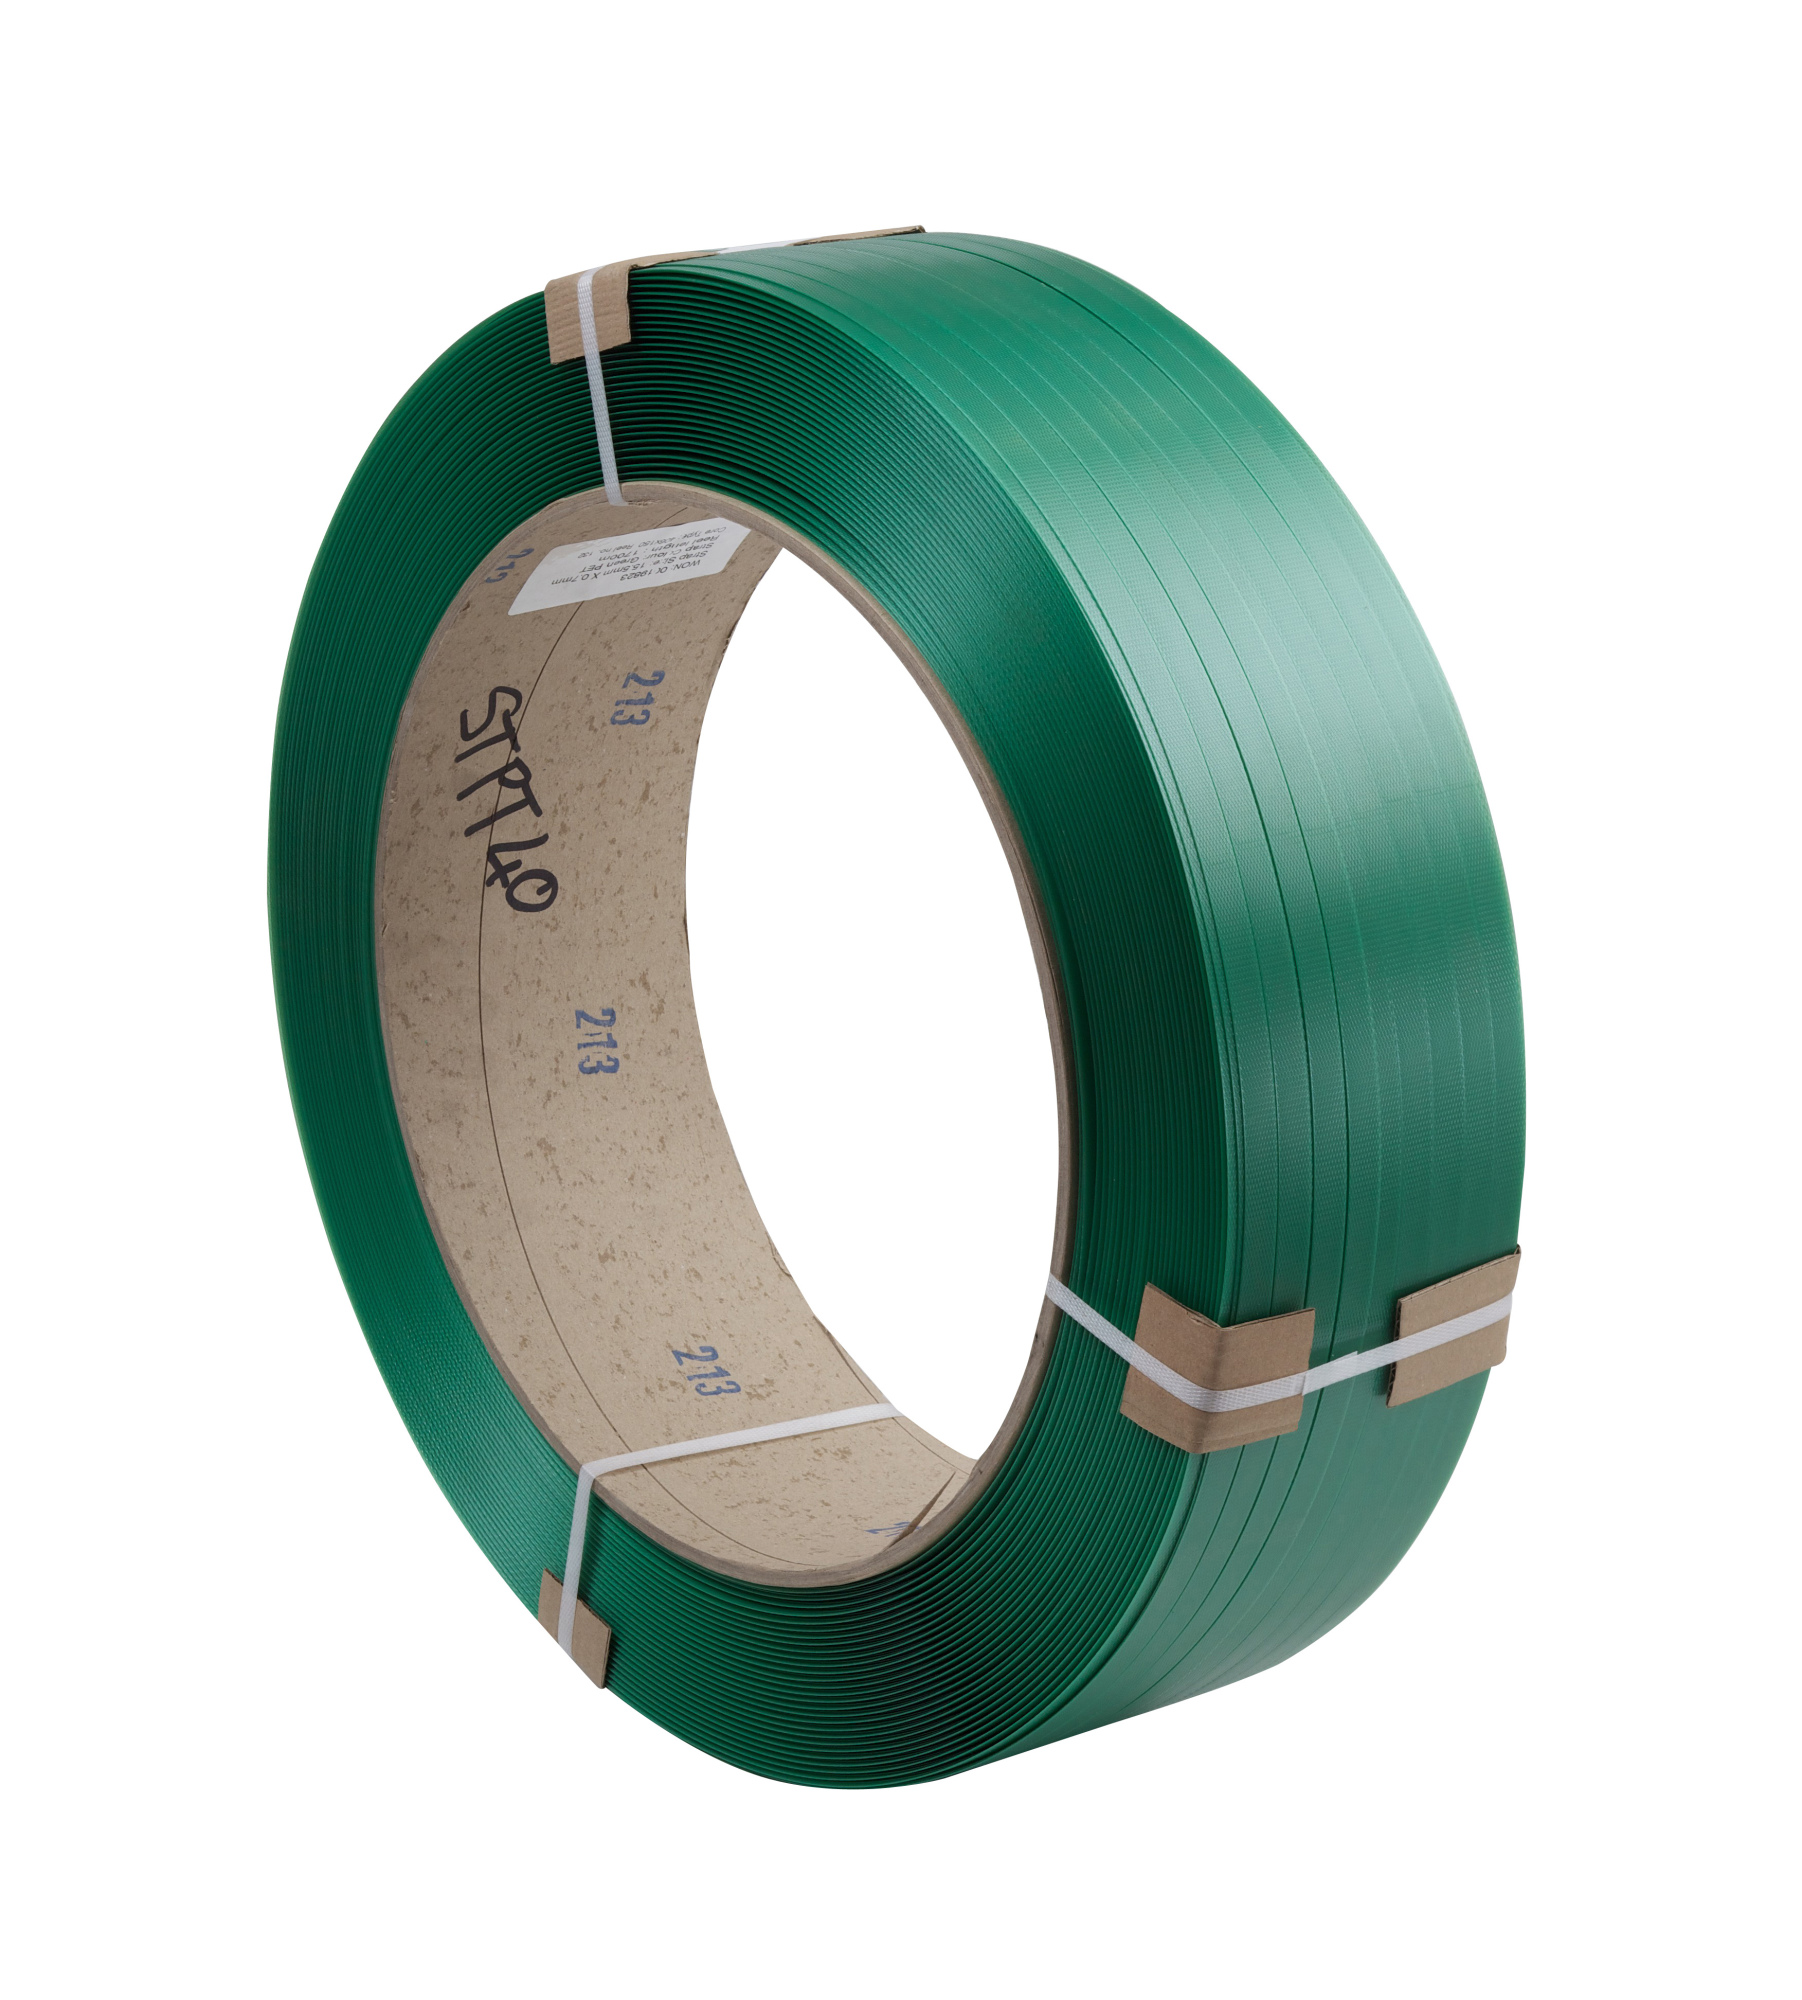 12.5 x 0.70mm x 2400m Green PET Strapping (406/150)